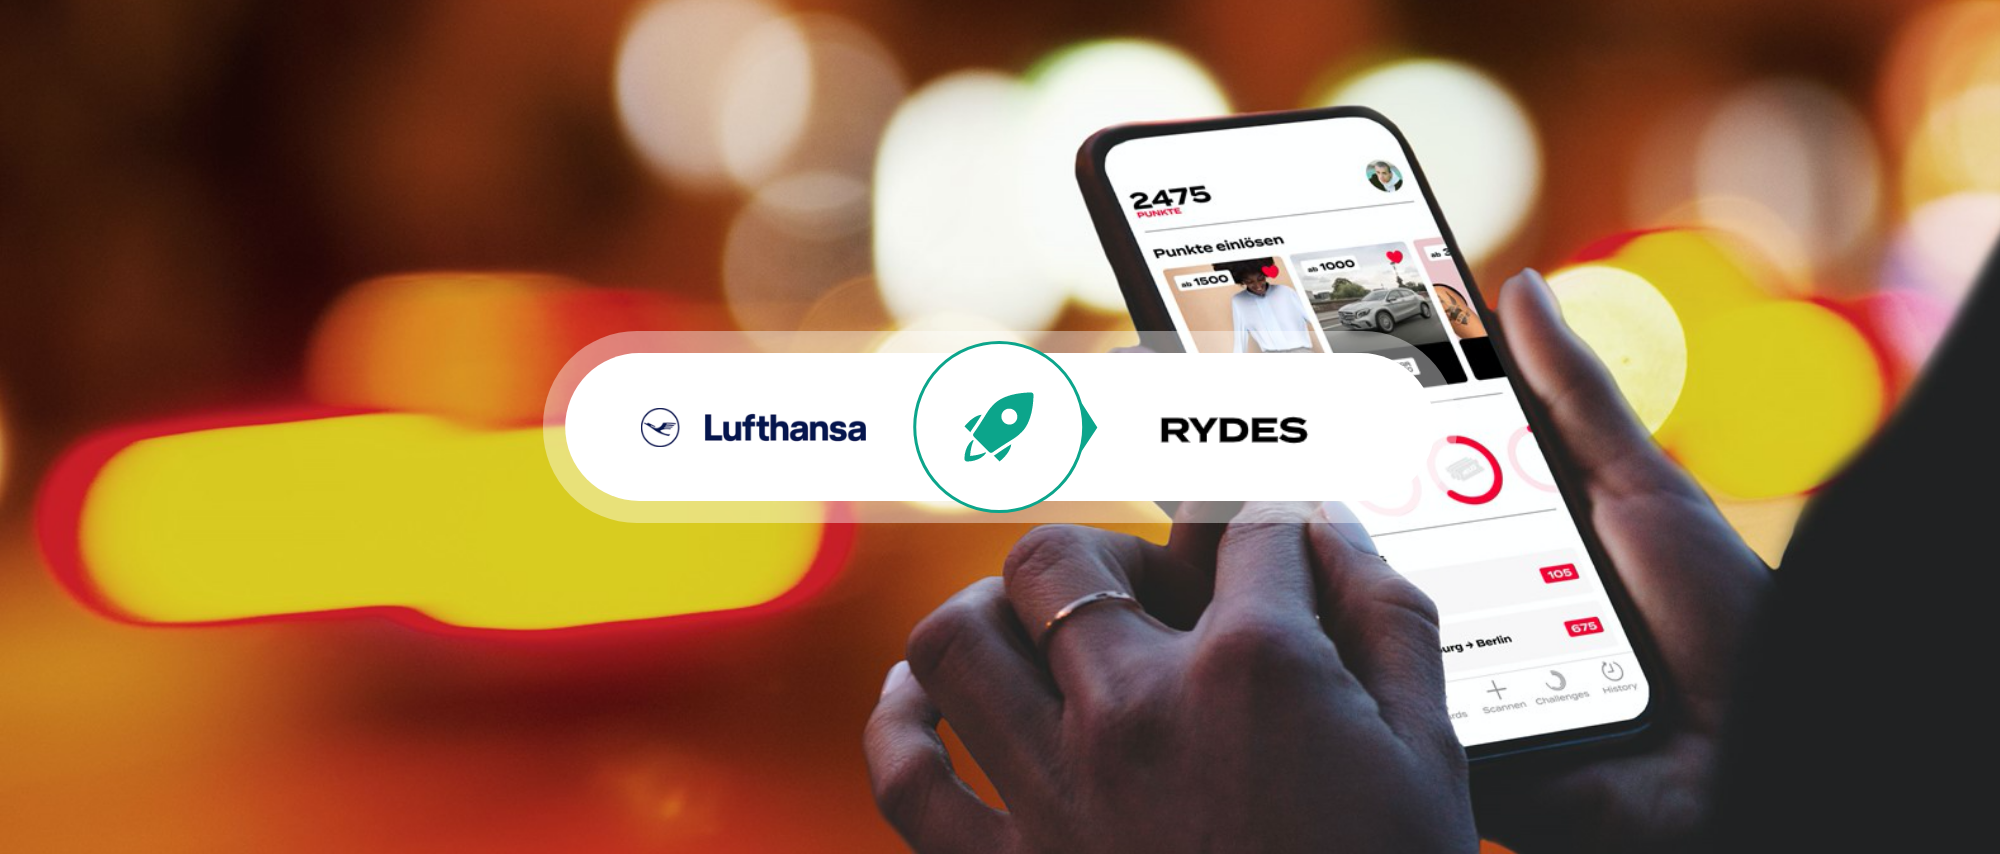 Lufthansa's RYDES: A New Way of Looking at Mobility Rewards